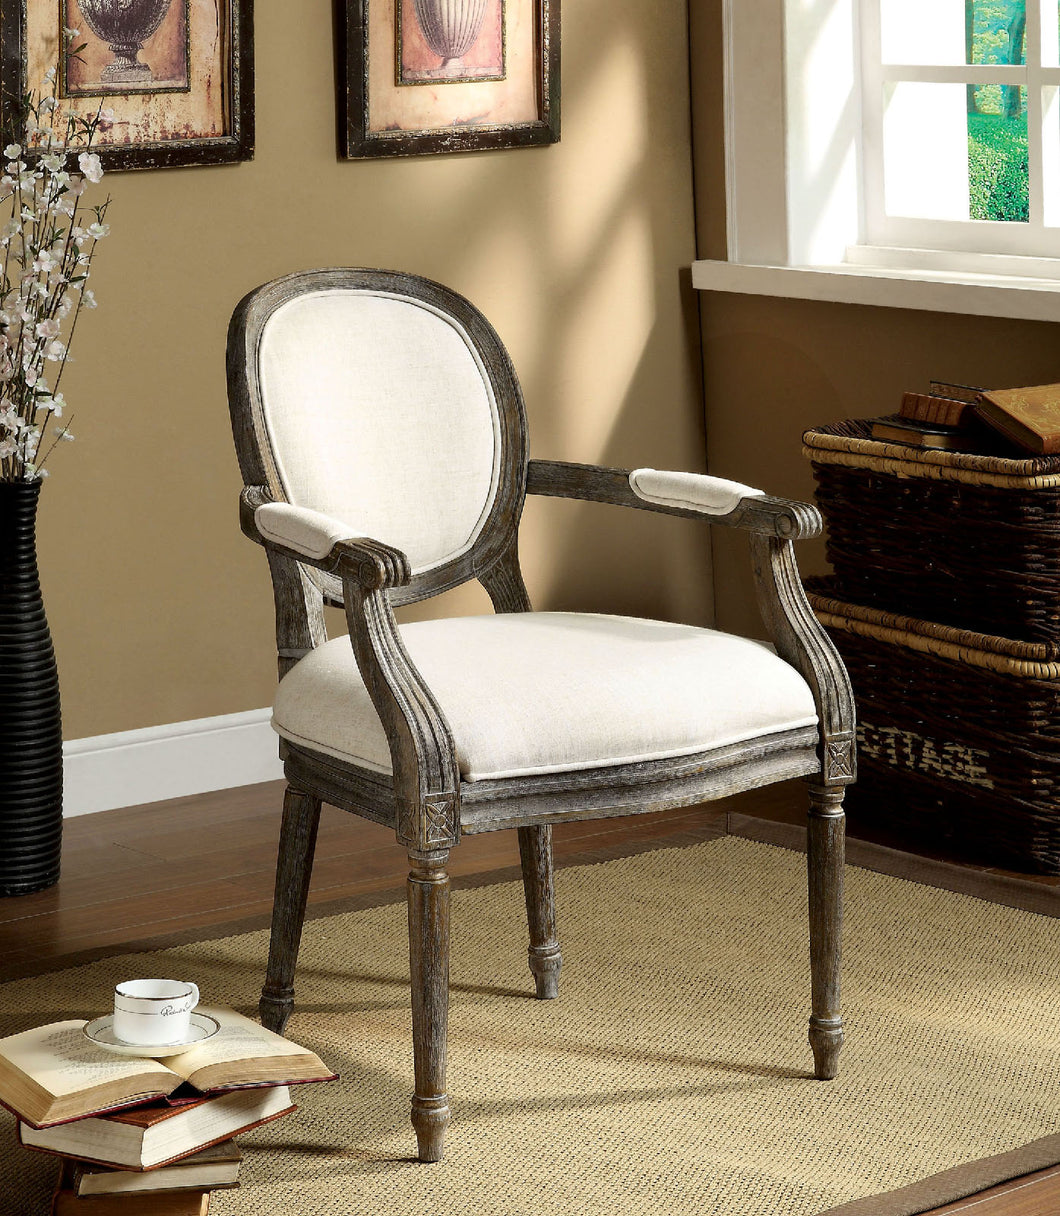 CM-AC6055 Accent Chair - Conway Contemporary Style Beige Linen Fabric Reclaimed Gray Finish Accent Chair